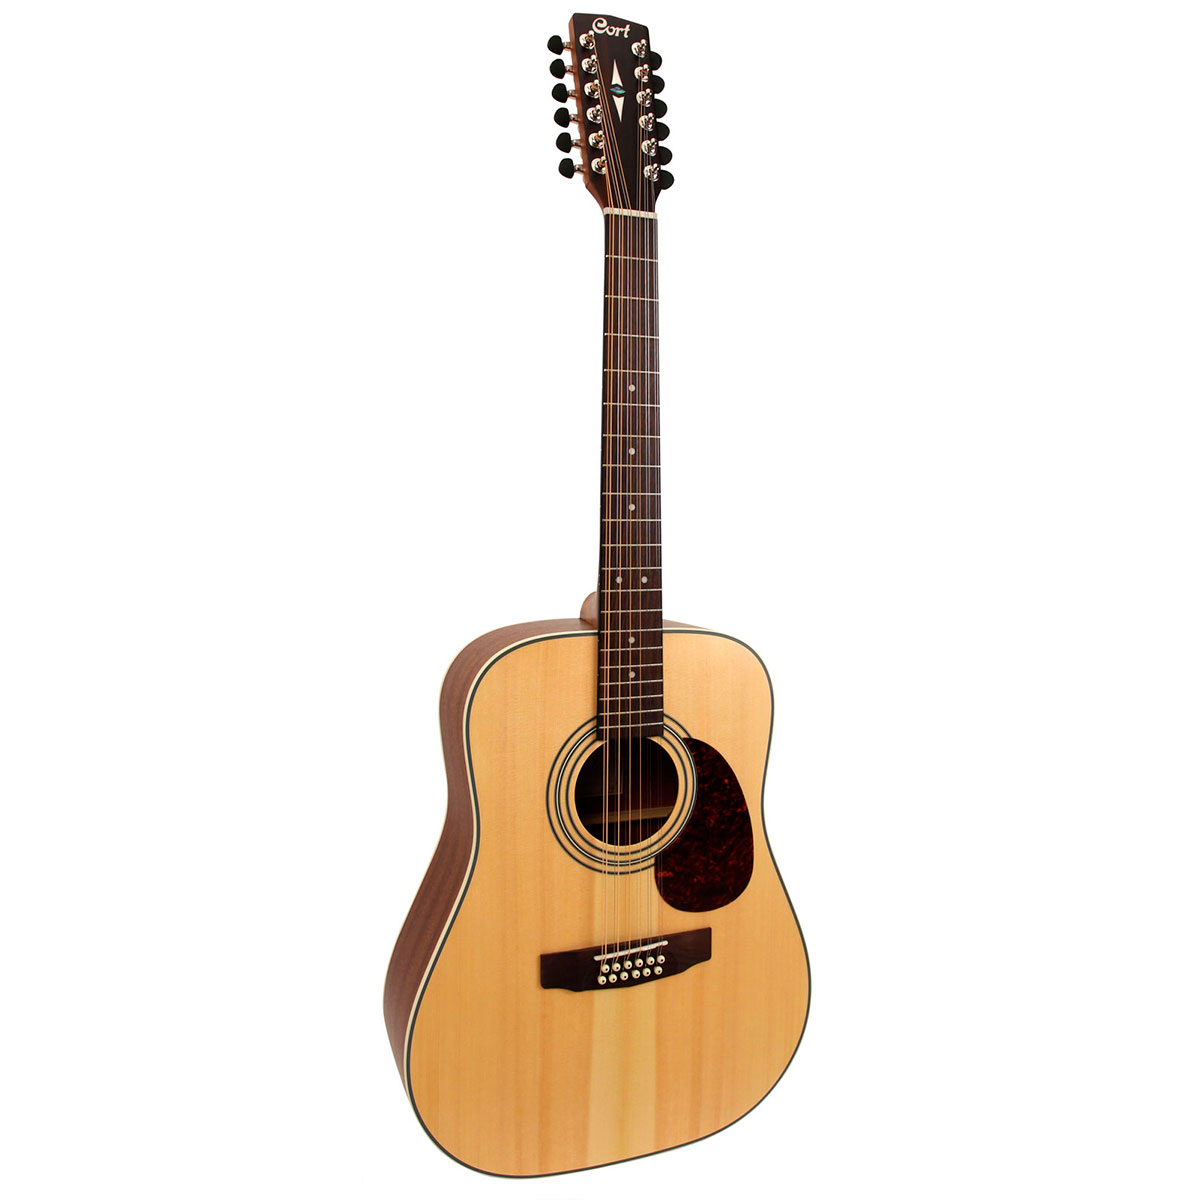 Ideas para regalar: Guitarras y bajos